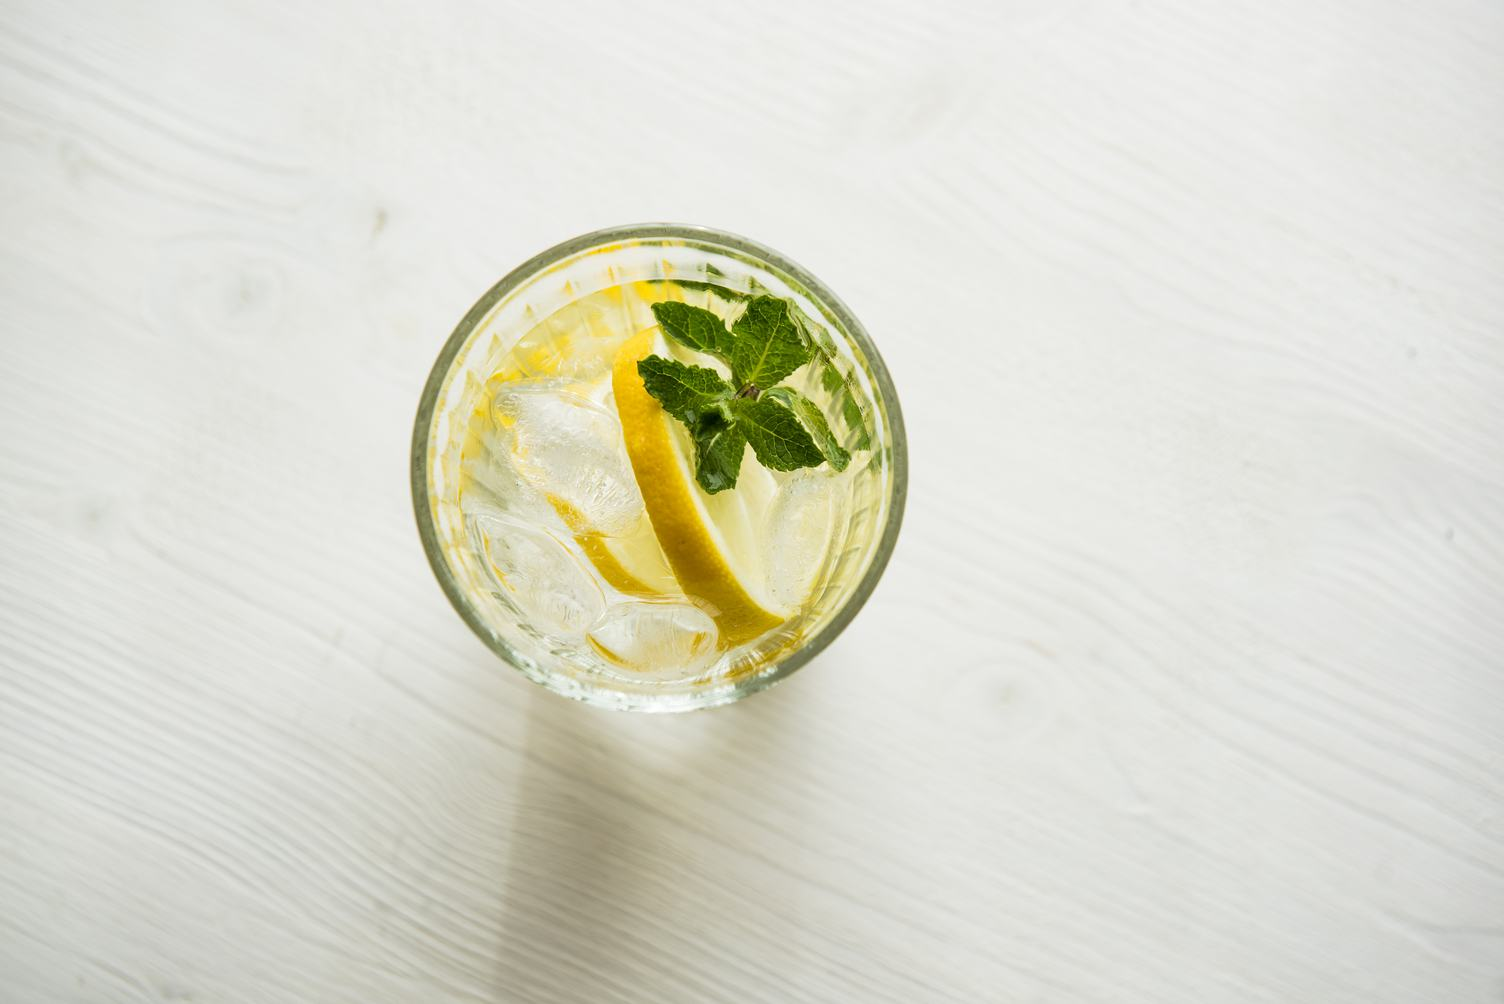 Water with Fresh Lemon, Mint and Ice on Wooden Background